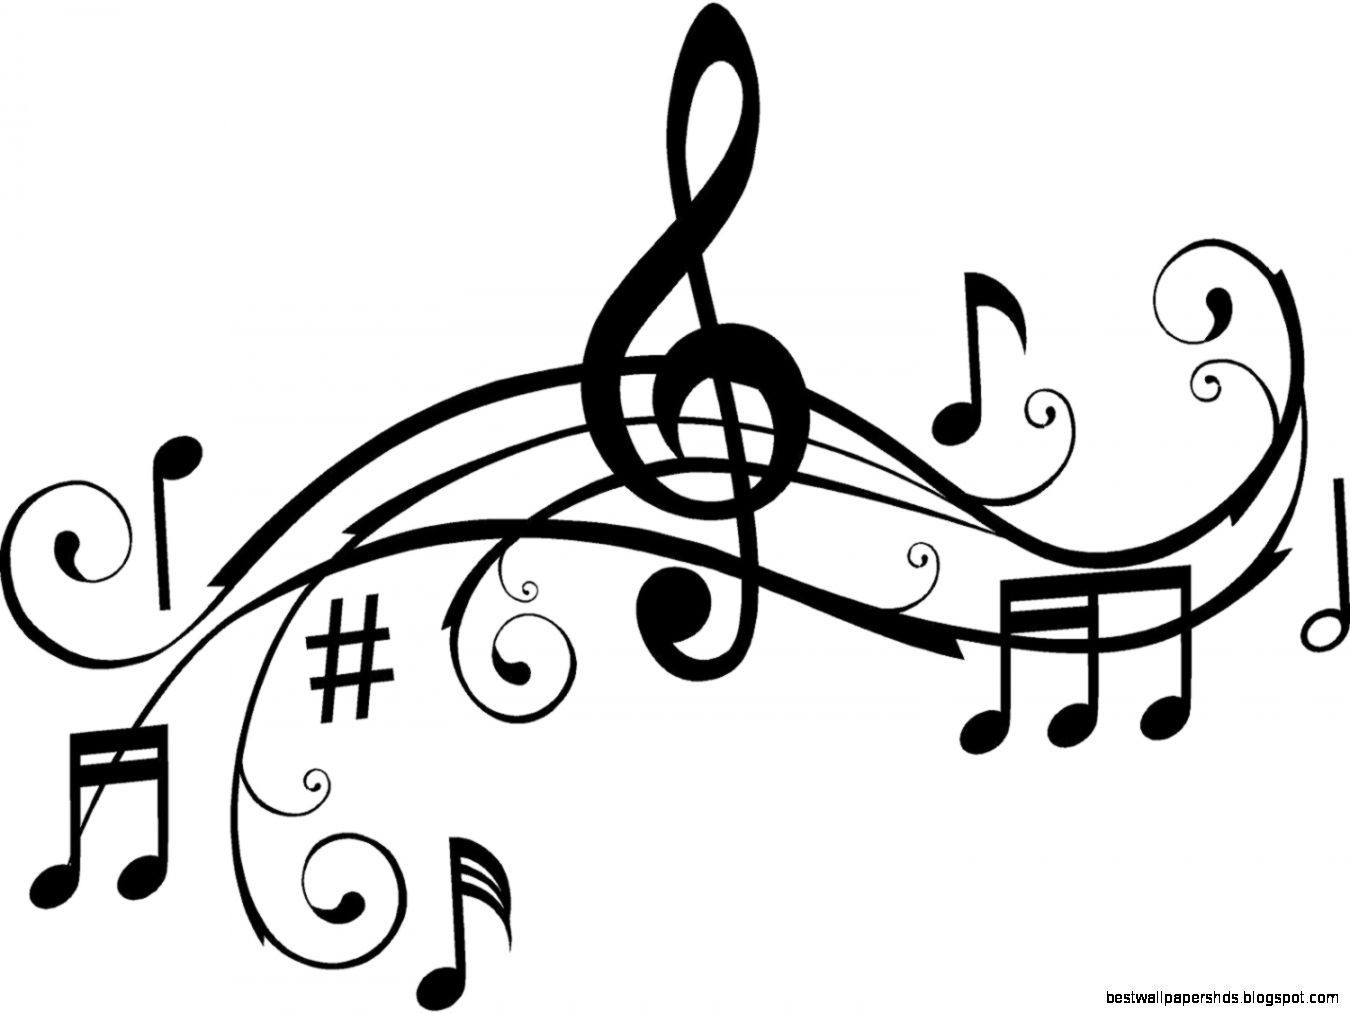 hight resolution of music notes clipart black and white clipart panda free clipart